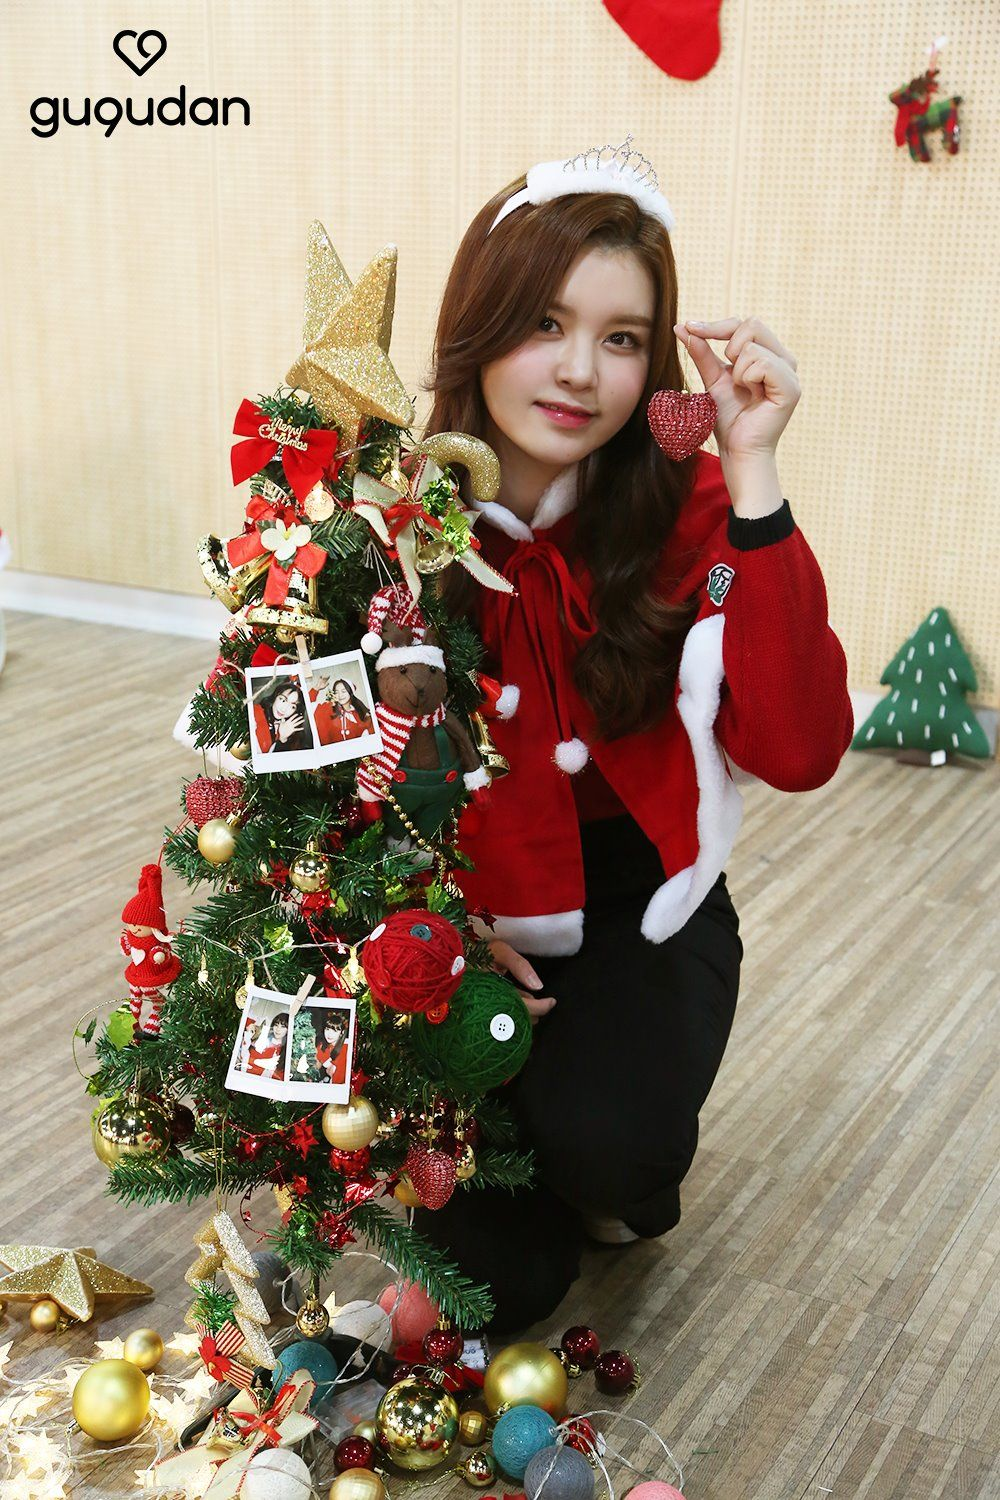 Pin by angkko on Gugudan (구구단) Christmas sweaters, A